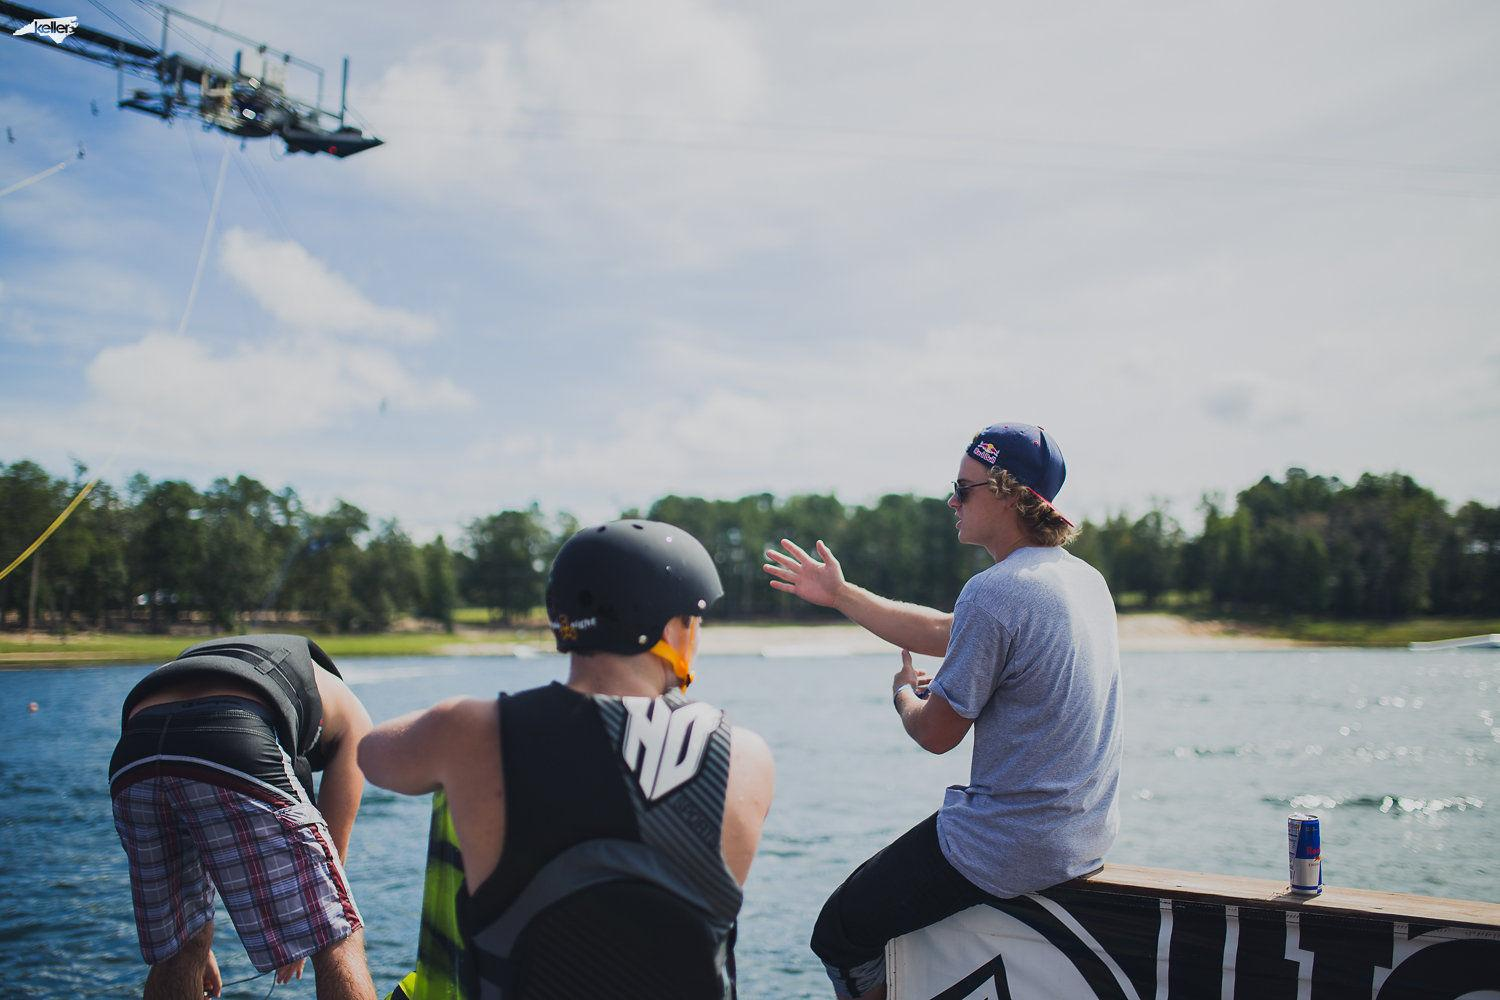 Red Bull pro athlete Mike Dowdy (right) offered pointers to wakeboarders during a two-hour clinic at the beginning of the event.